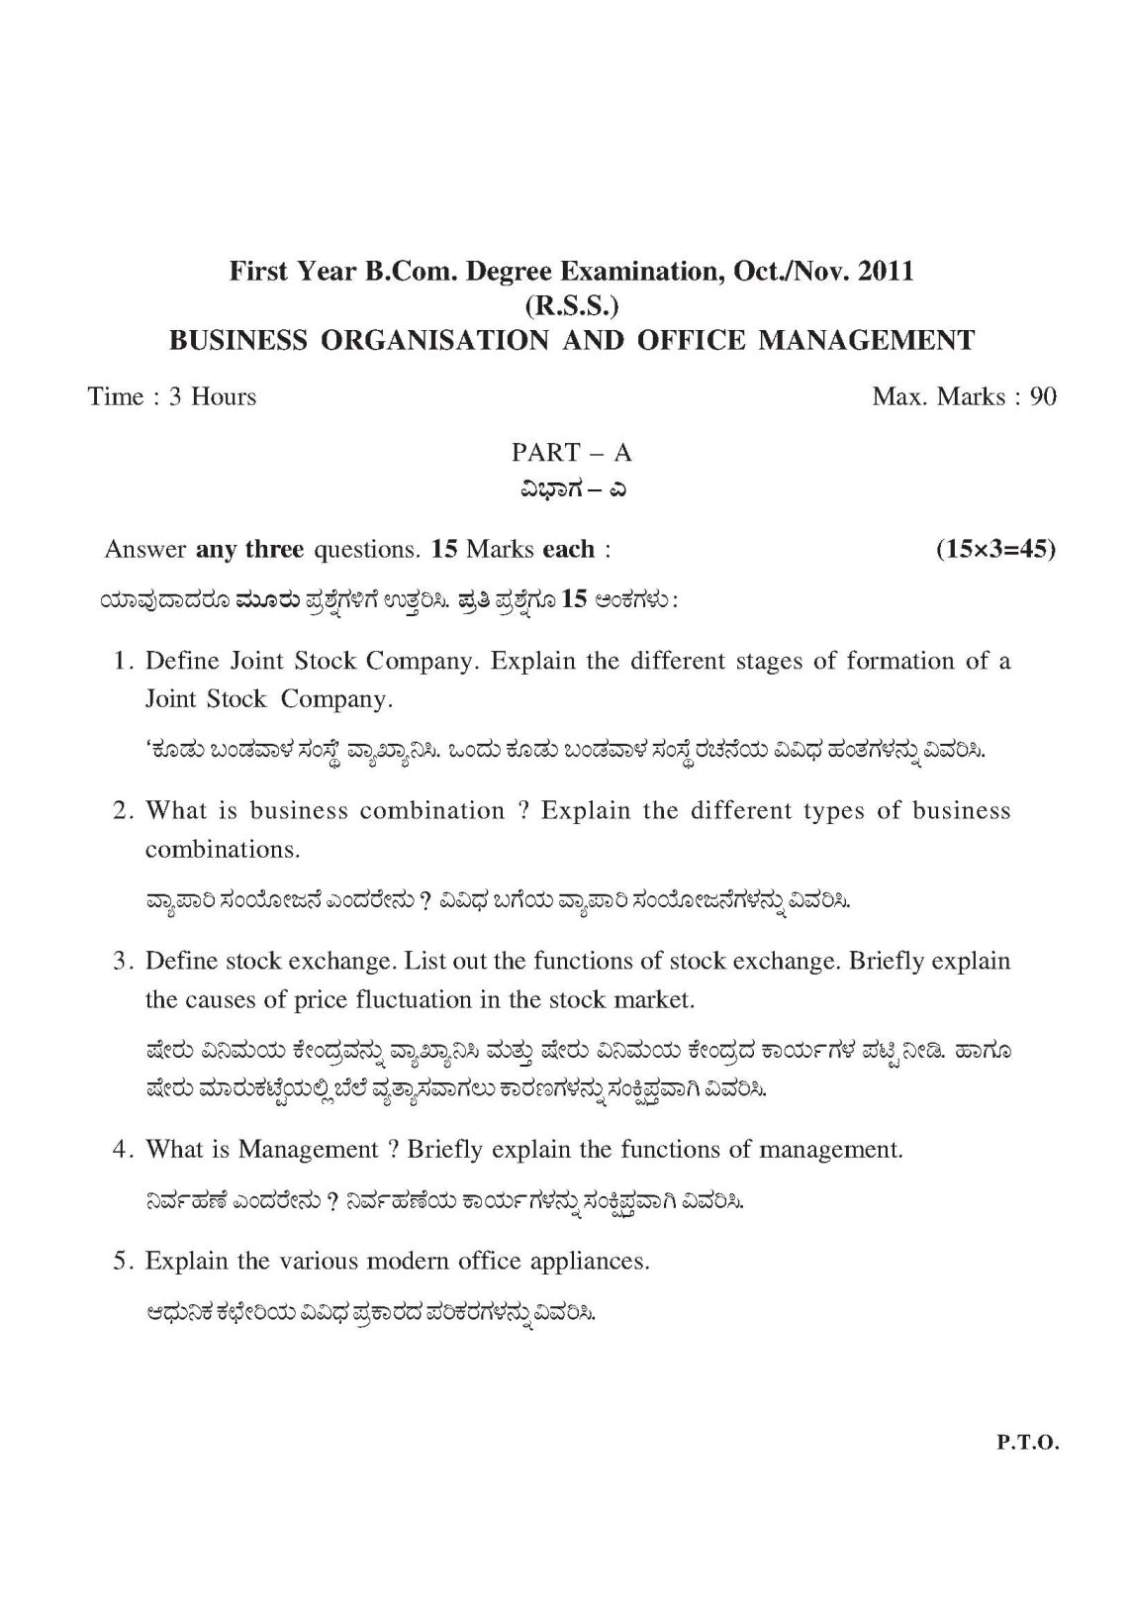 Research paper format for 2nd grade